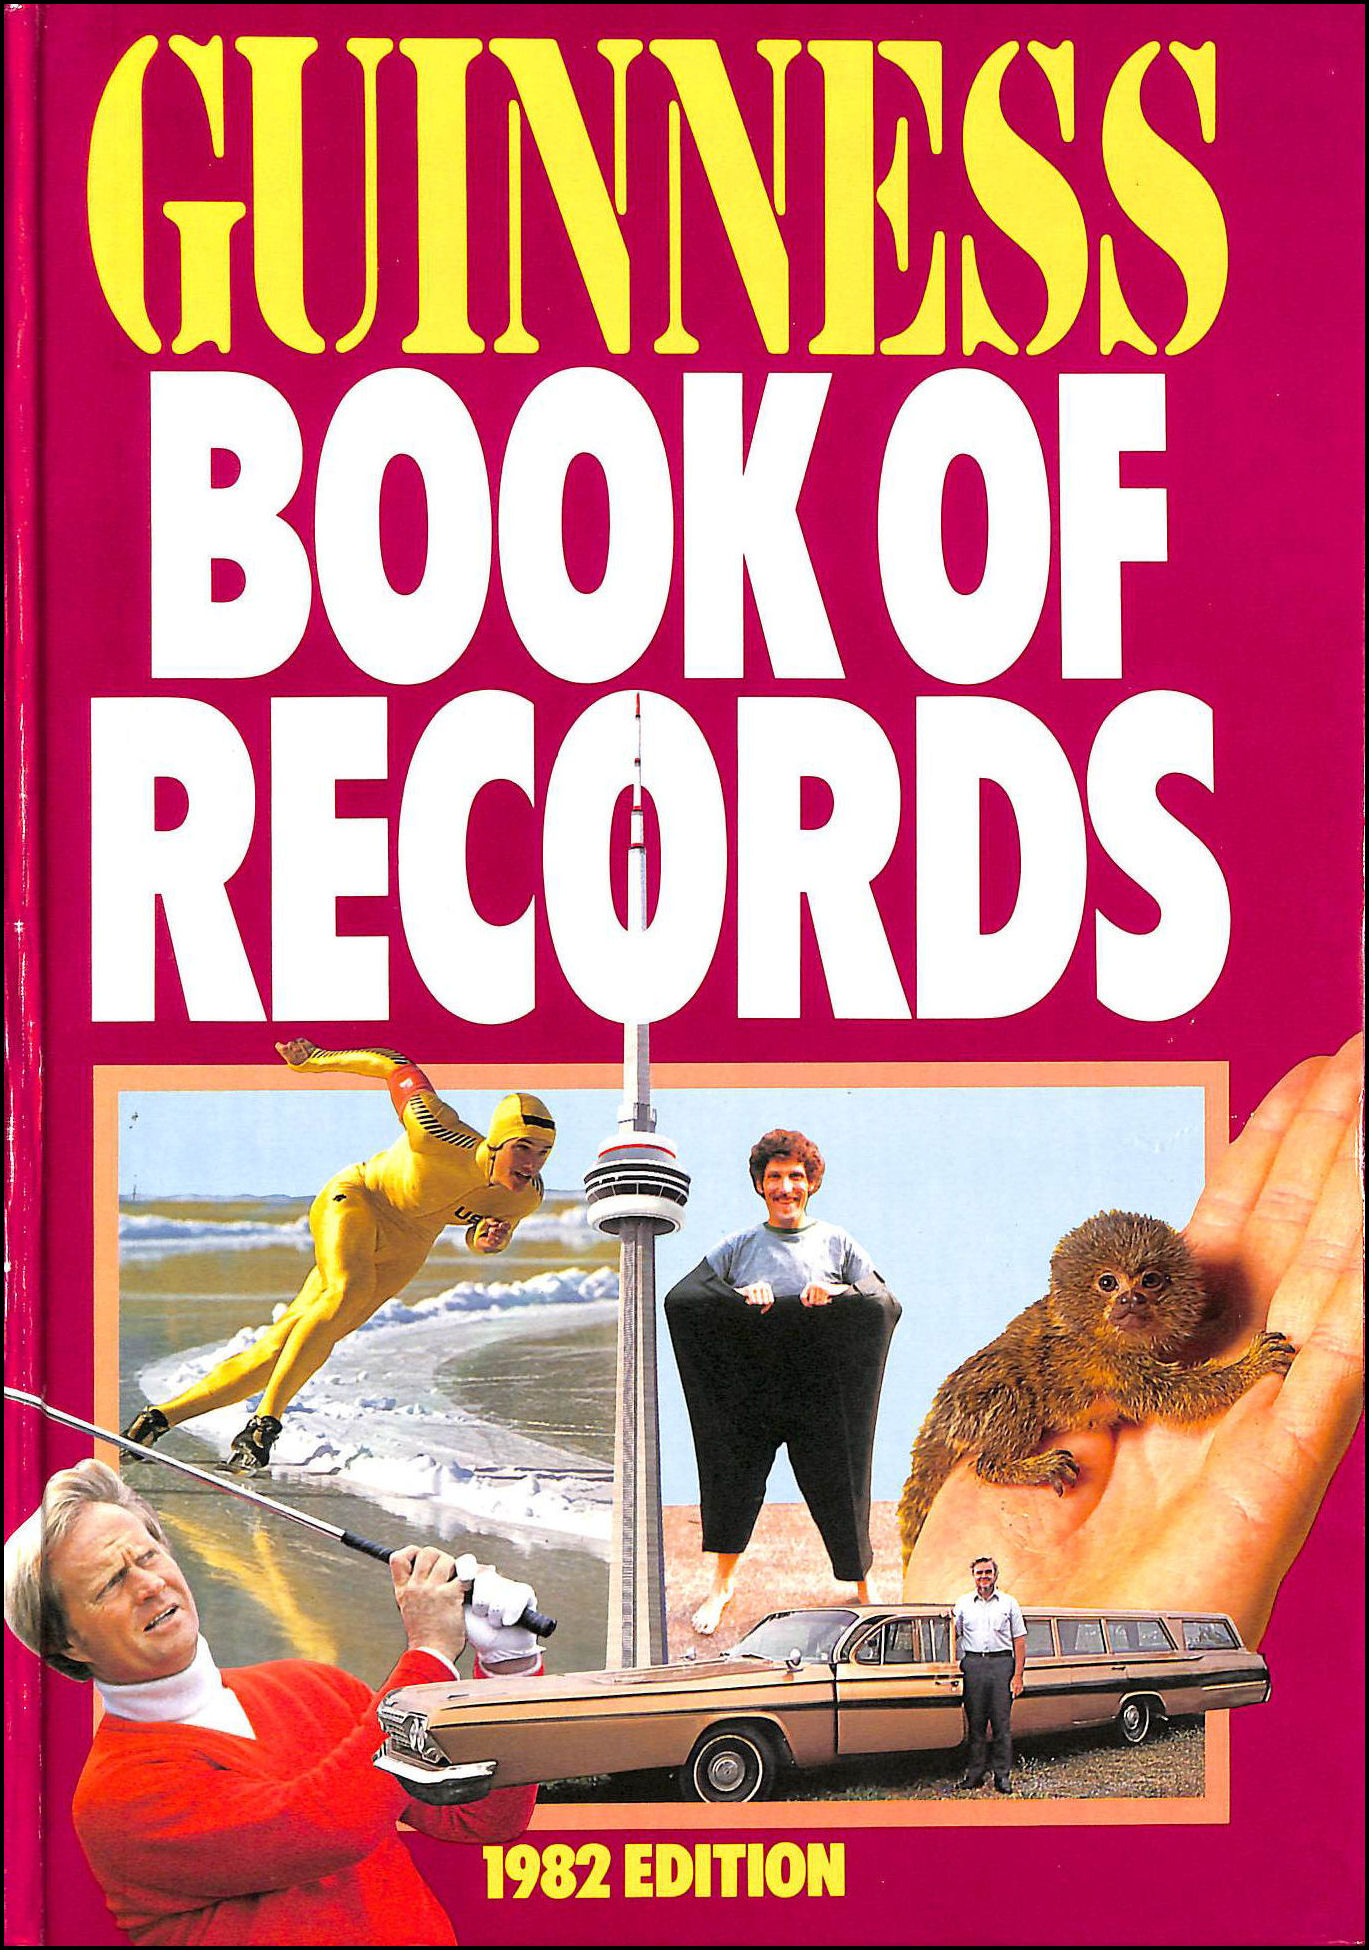 Image for Guinness Book of Records: 1982 Edition